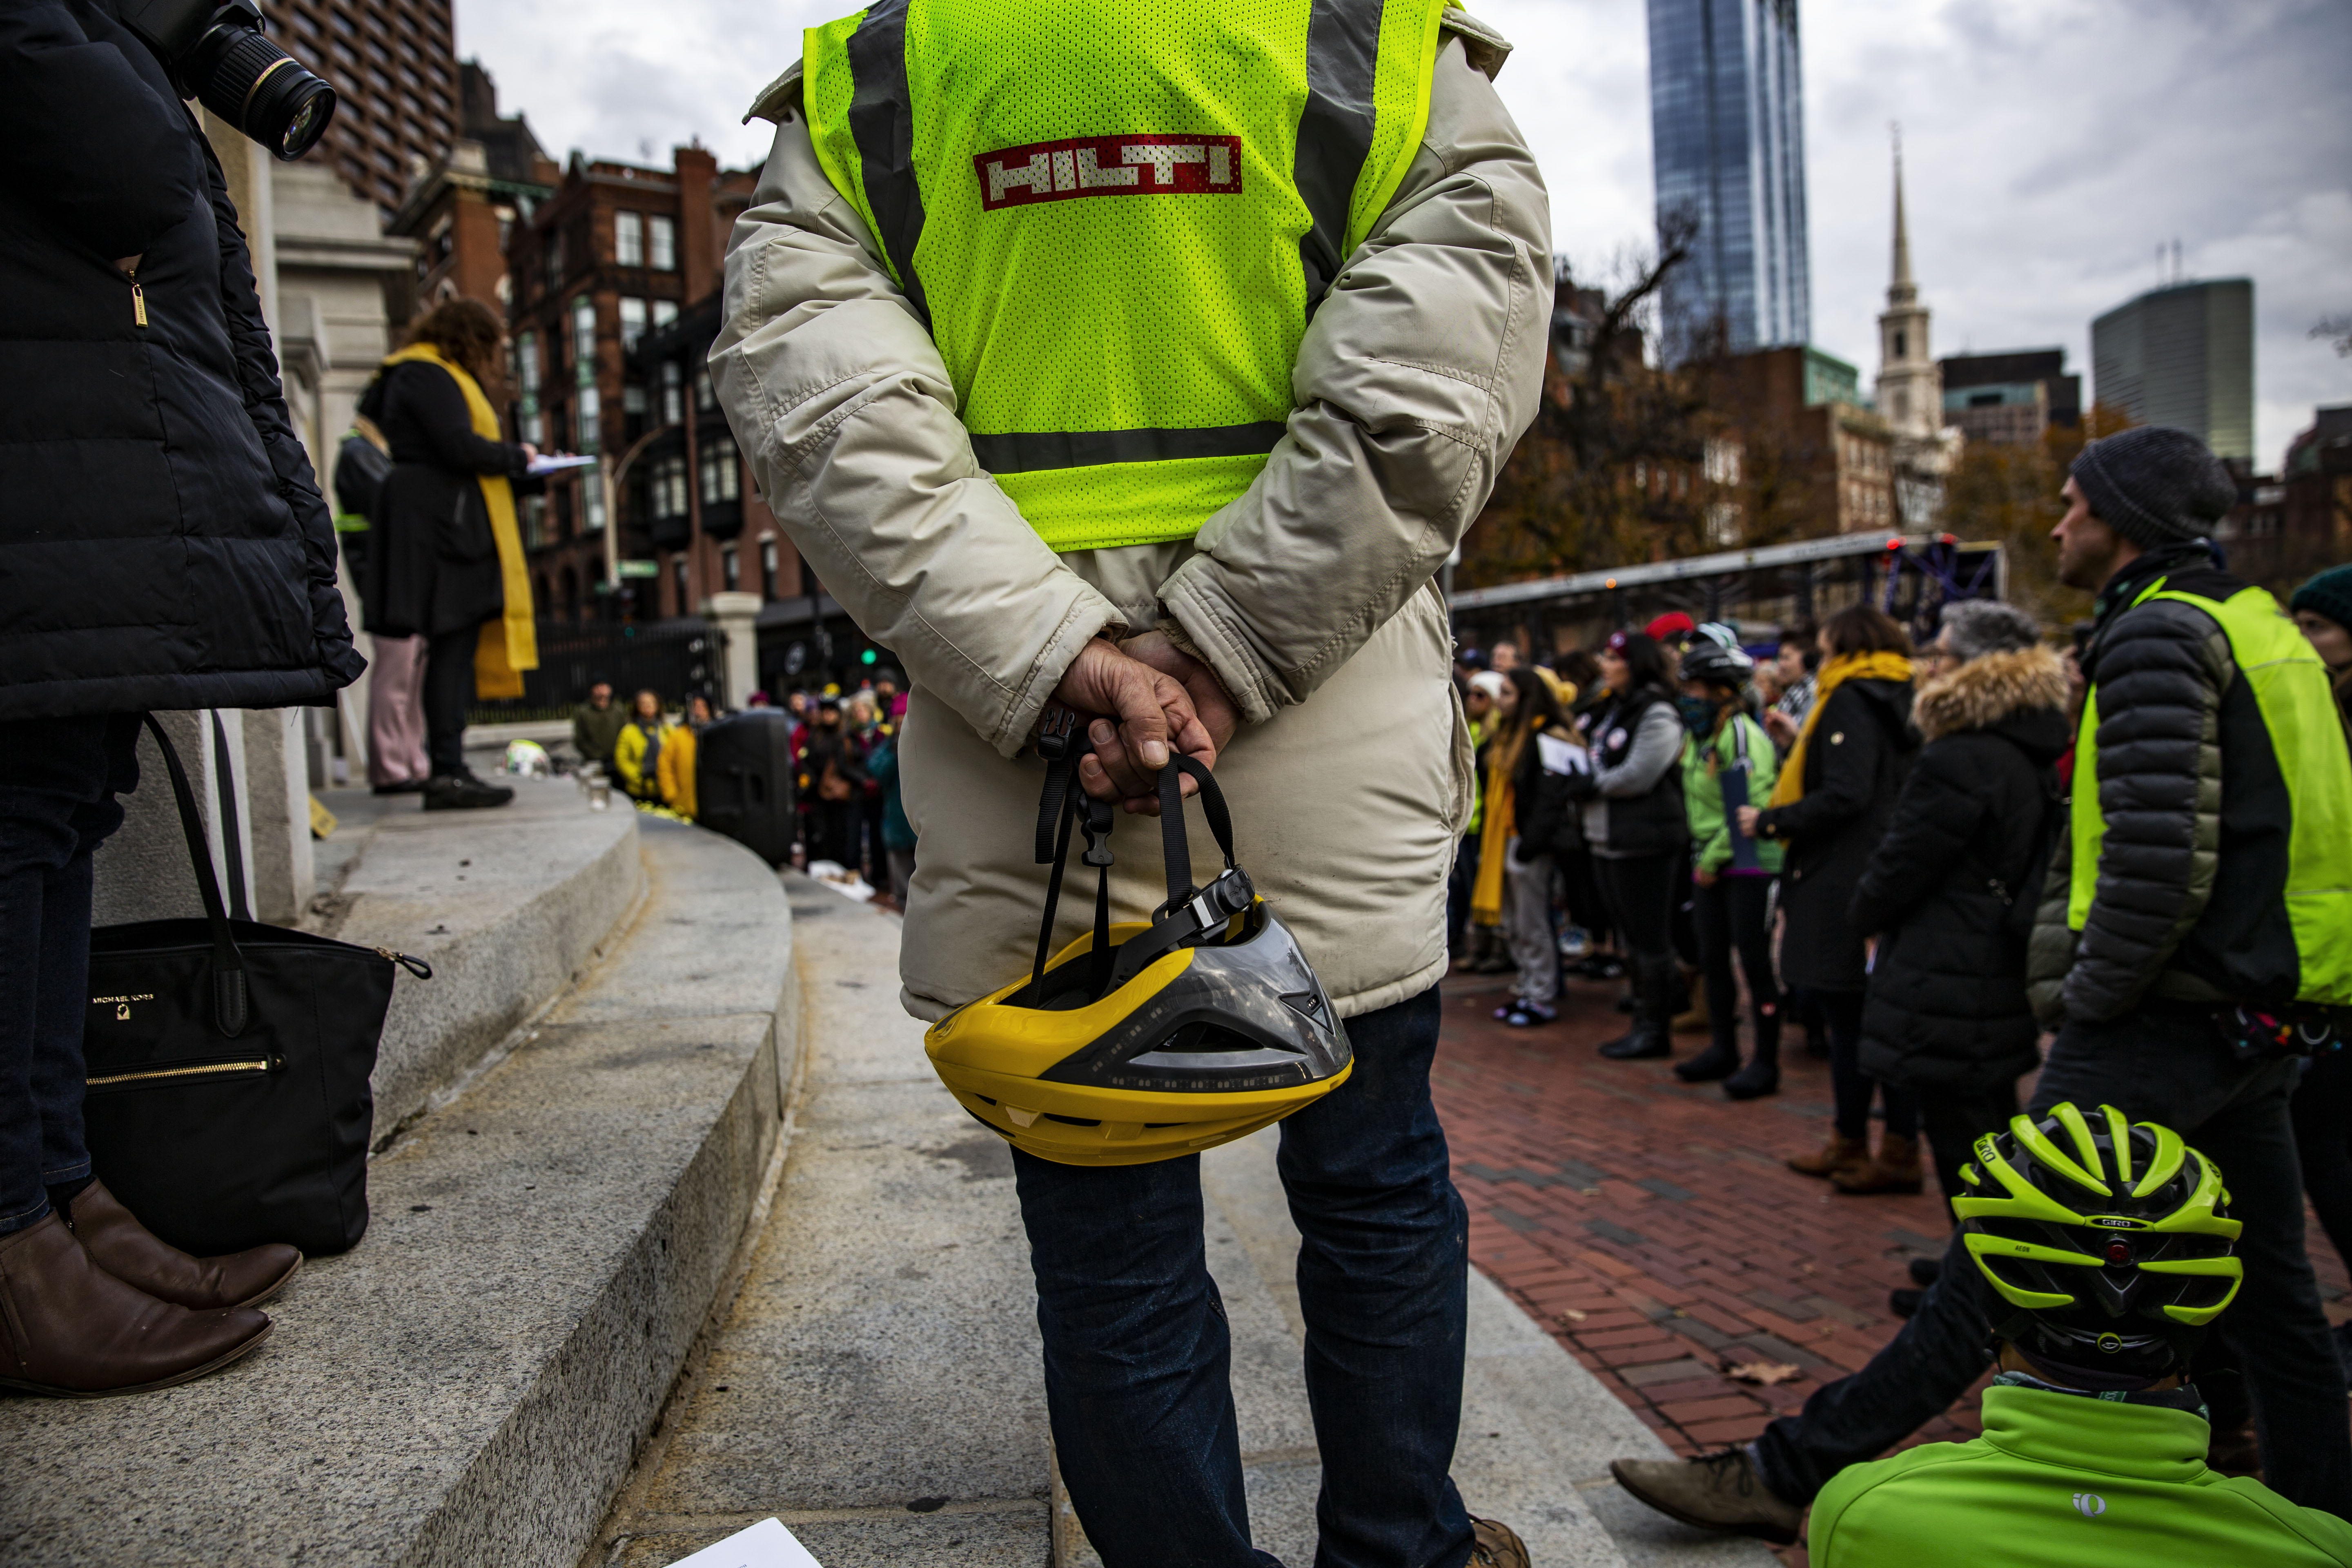 A crowd of people, many of whom are wearing yellow scarves or flourescent yellow vests, stand crowded around the steps of the Massachusetts State House in Boston. A woman with curly brown hair and a black jacket stands at the top of the steps and reads from something she is holding. Directly in front of the camera is the back of someone wearing a down coat and a yellow safety vest and holding a yellow bike helmet behind their back.